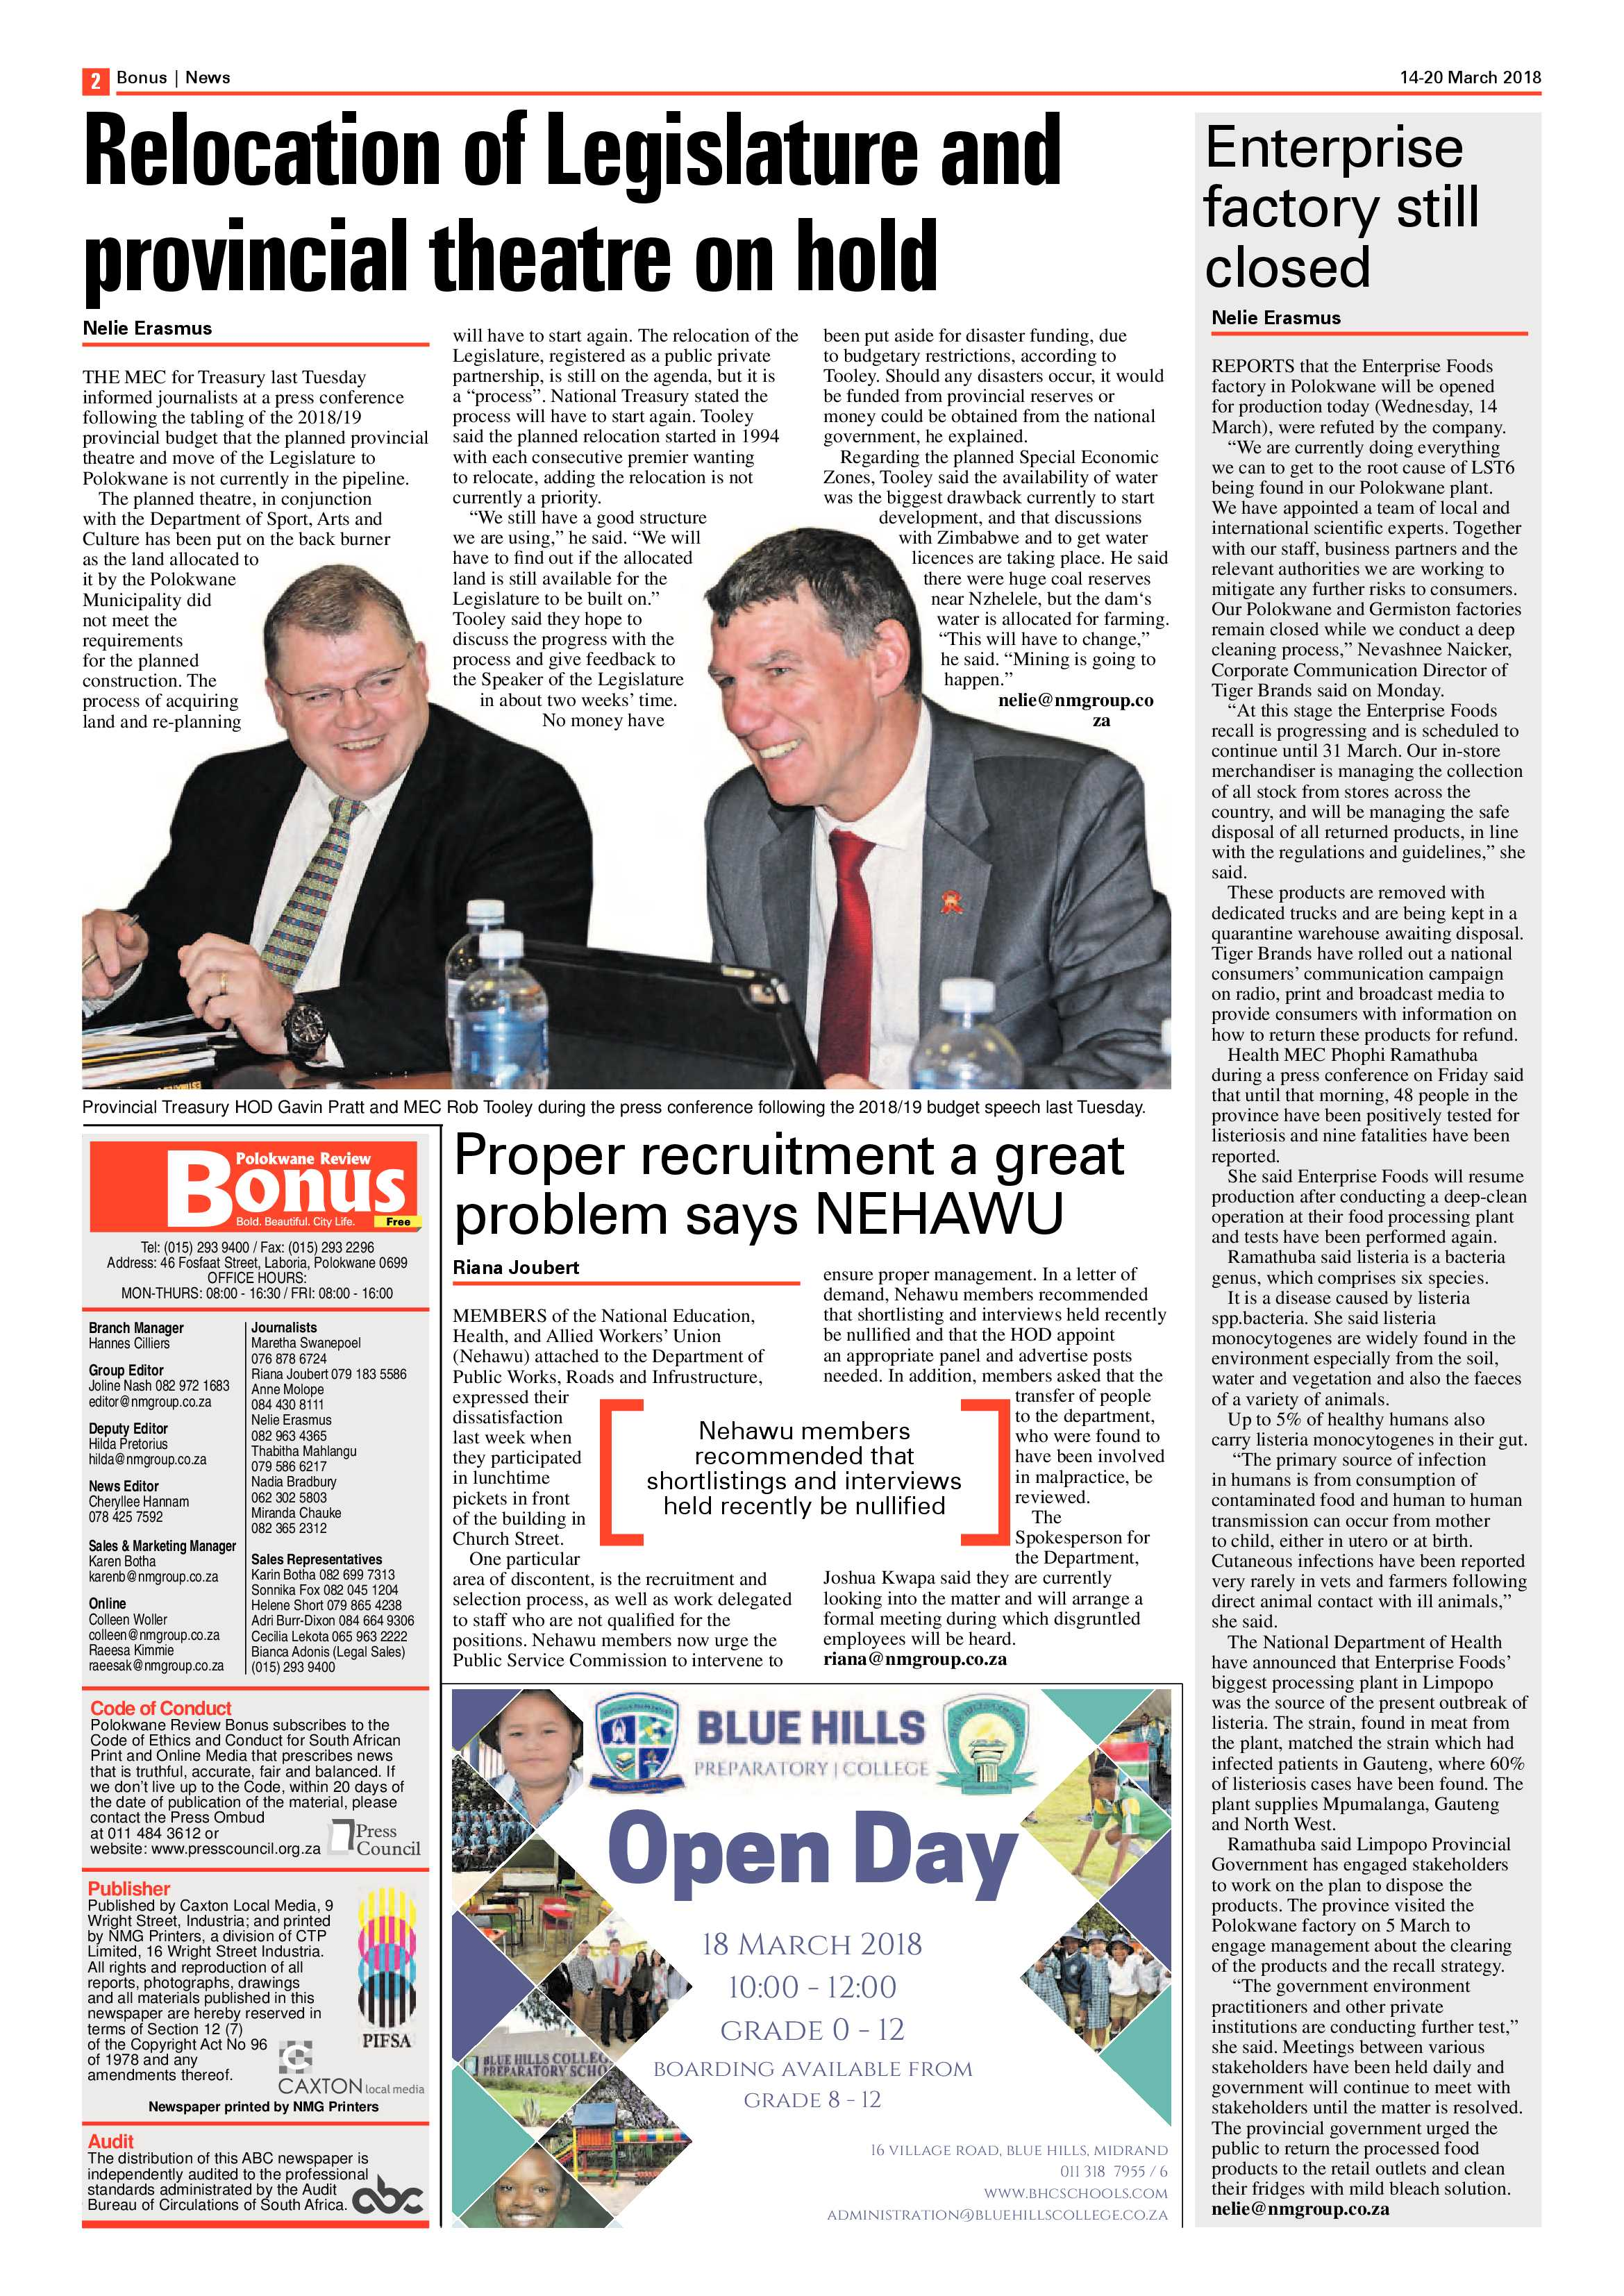 review-bonus-14-march-2018-epapers-page-2